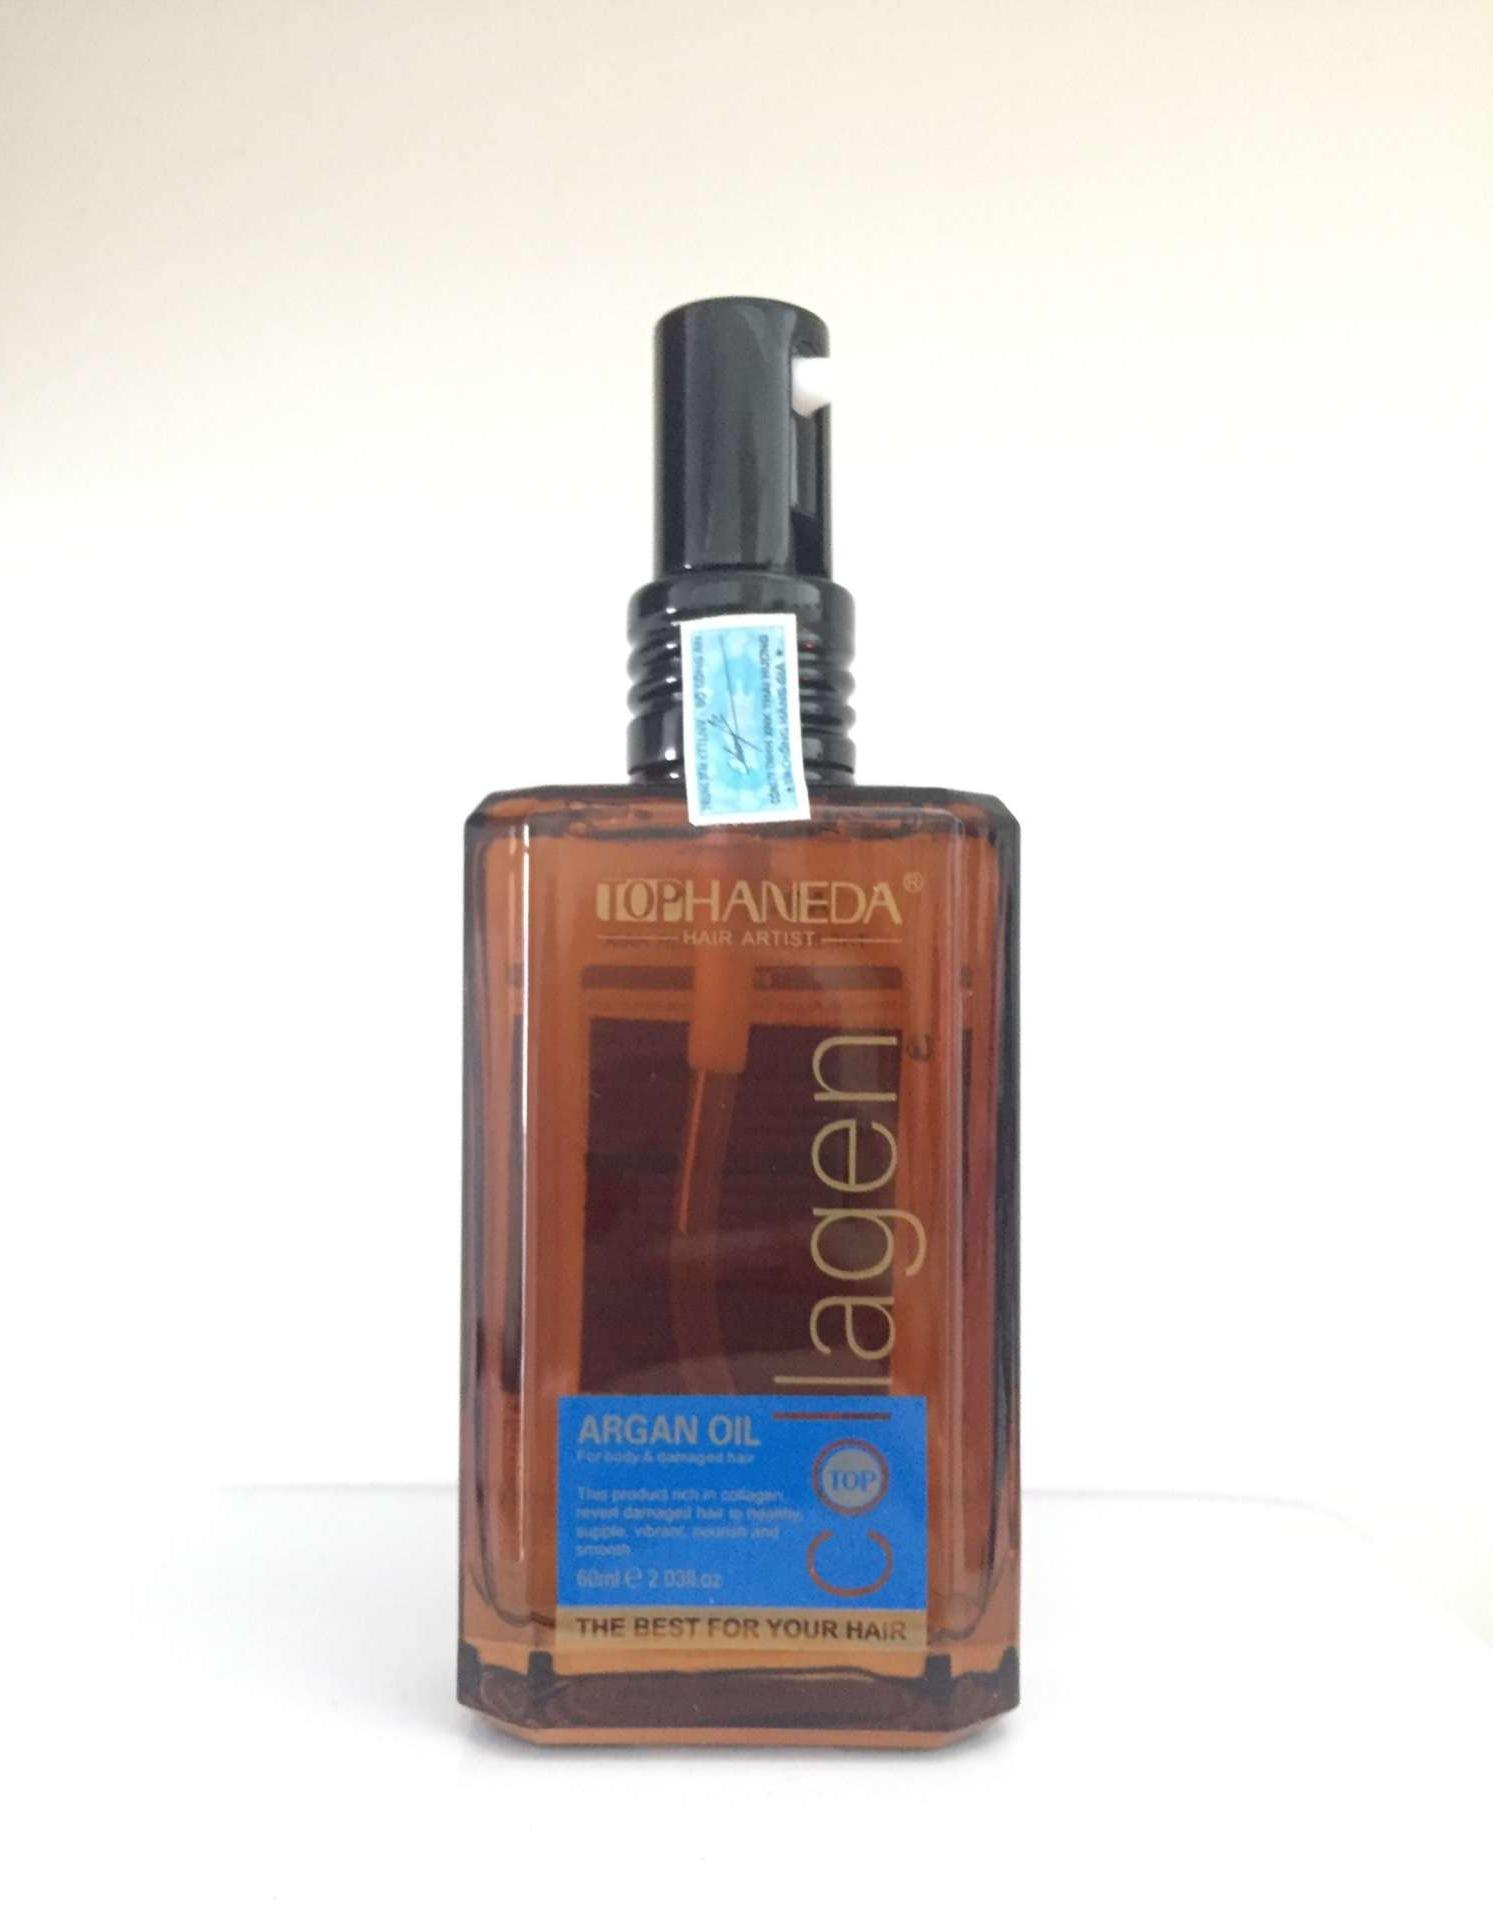 Top Haneda Collagen Argan Oil For Body & Damaged Hair, 60ml